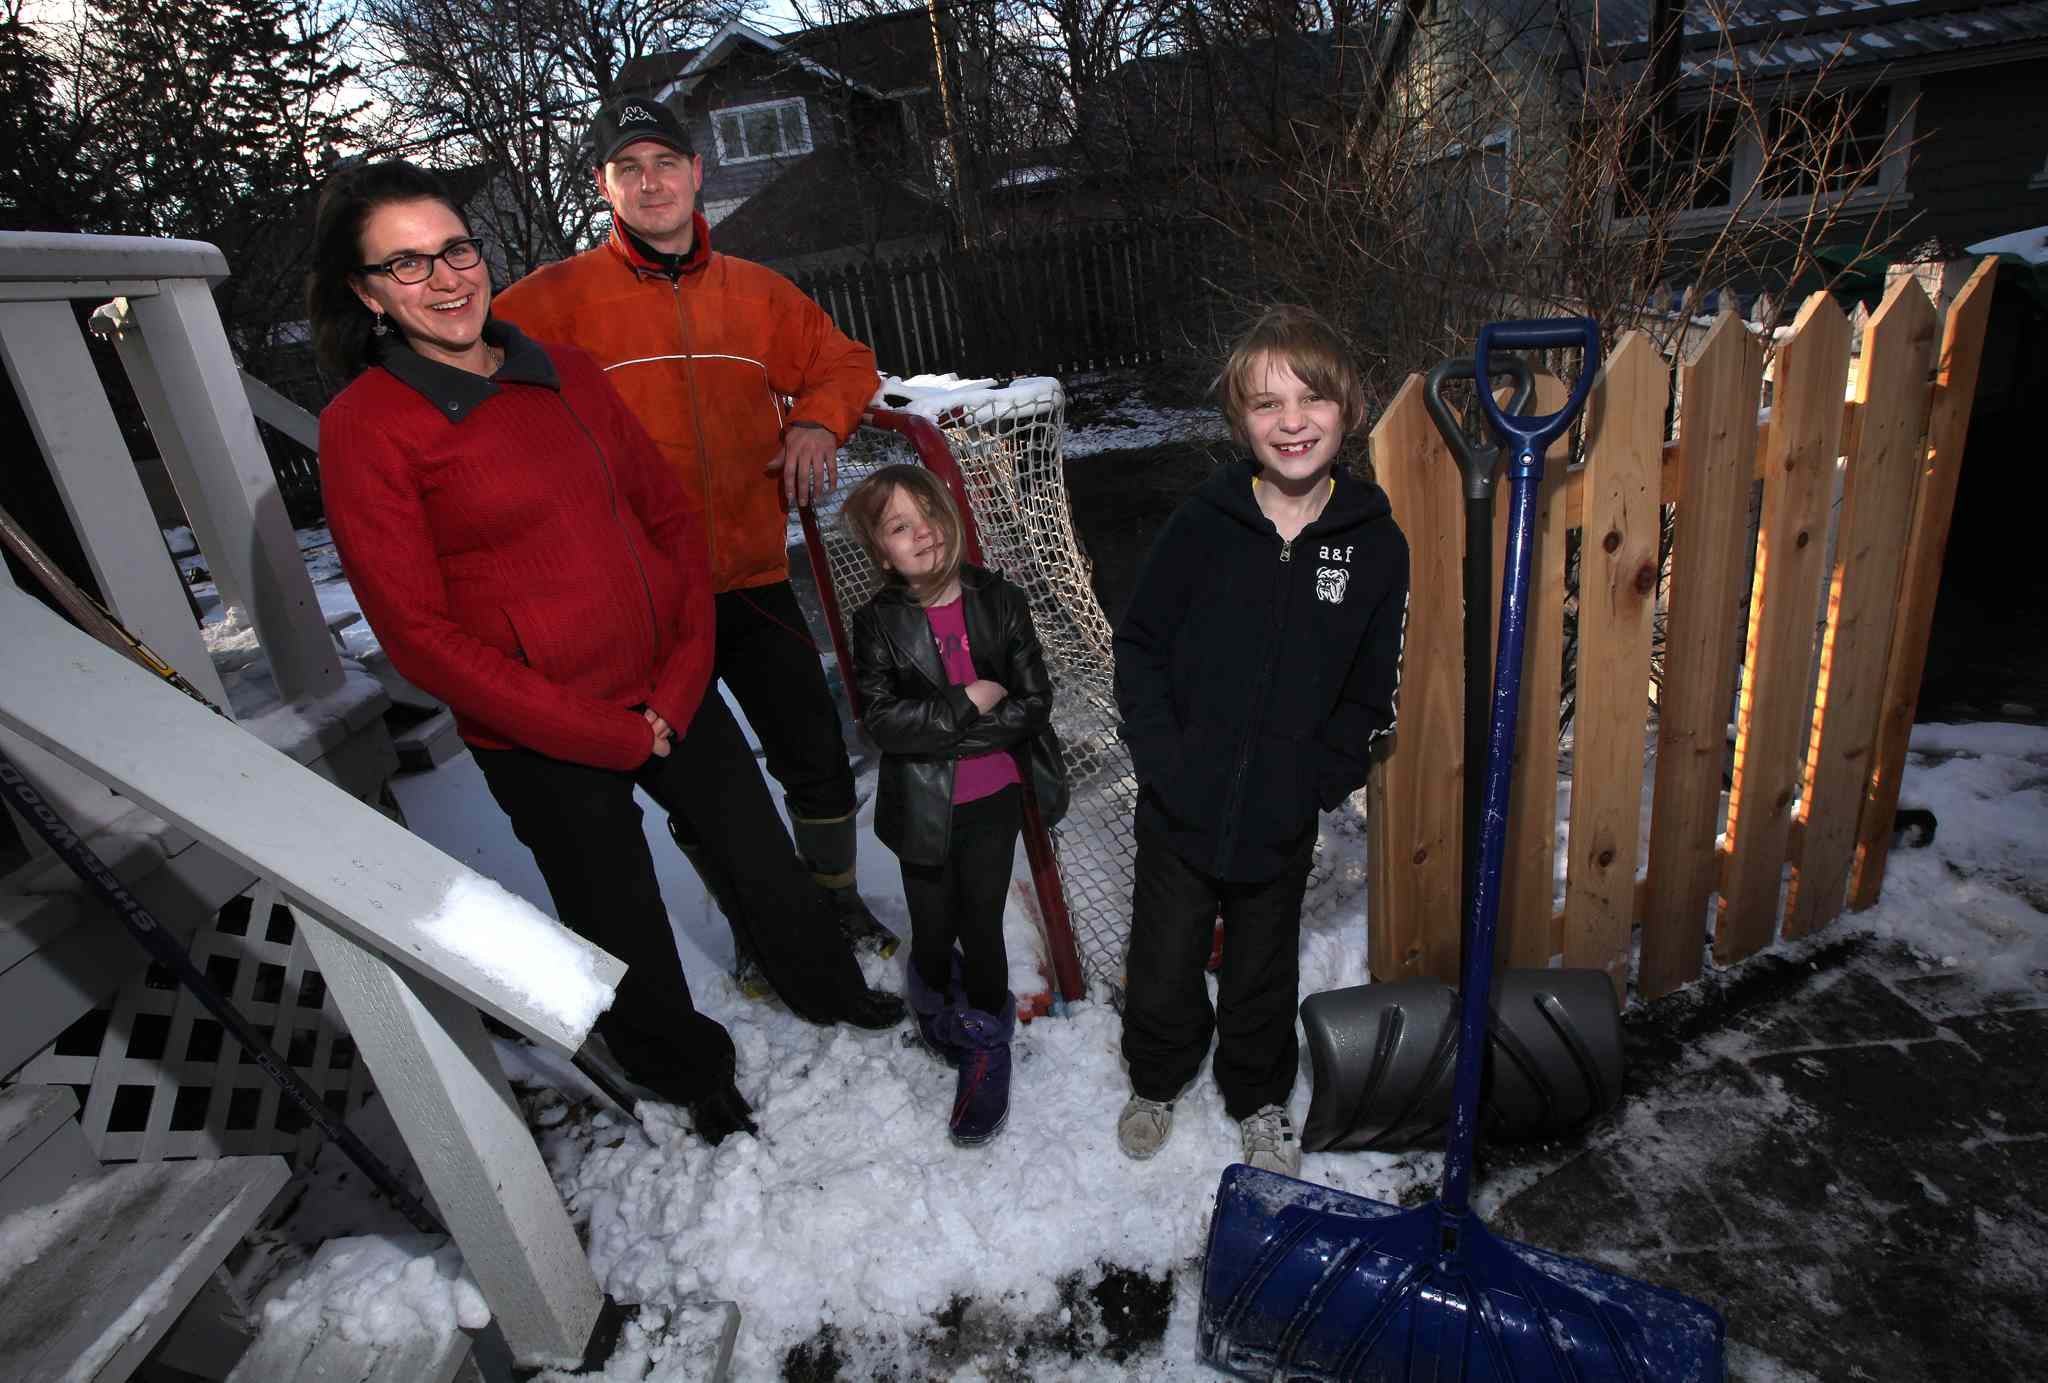 Kristen Pachet (from left), her husband Joel Savard, and their two children Thalia, 5, and Loic, 9, were teamed with refugees Gibril and Ann Marie Bangura and their 3 children (pictured at top).